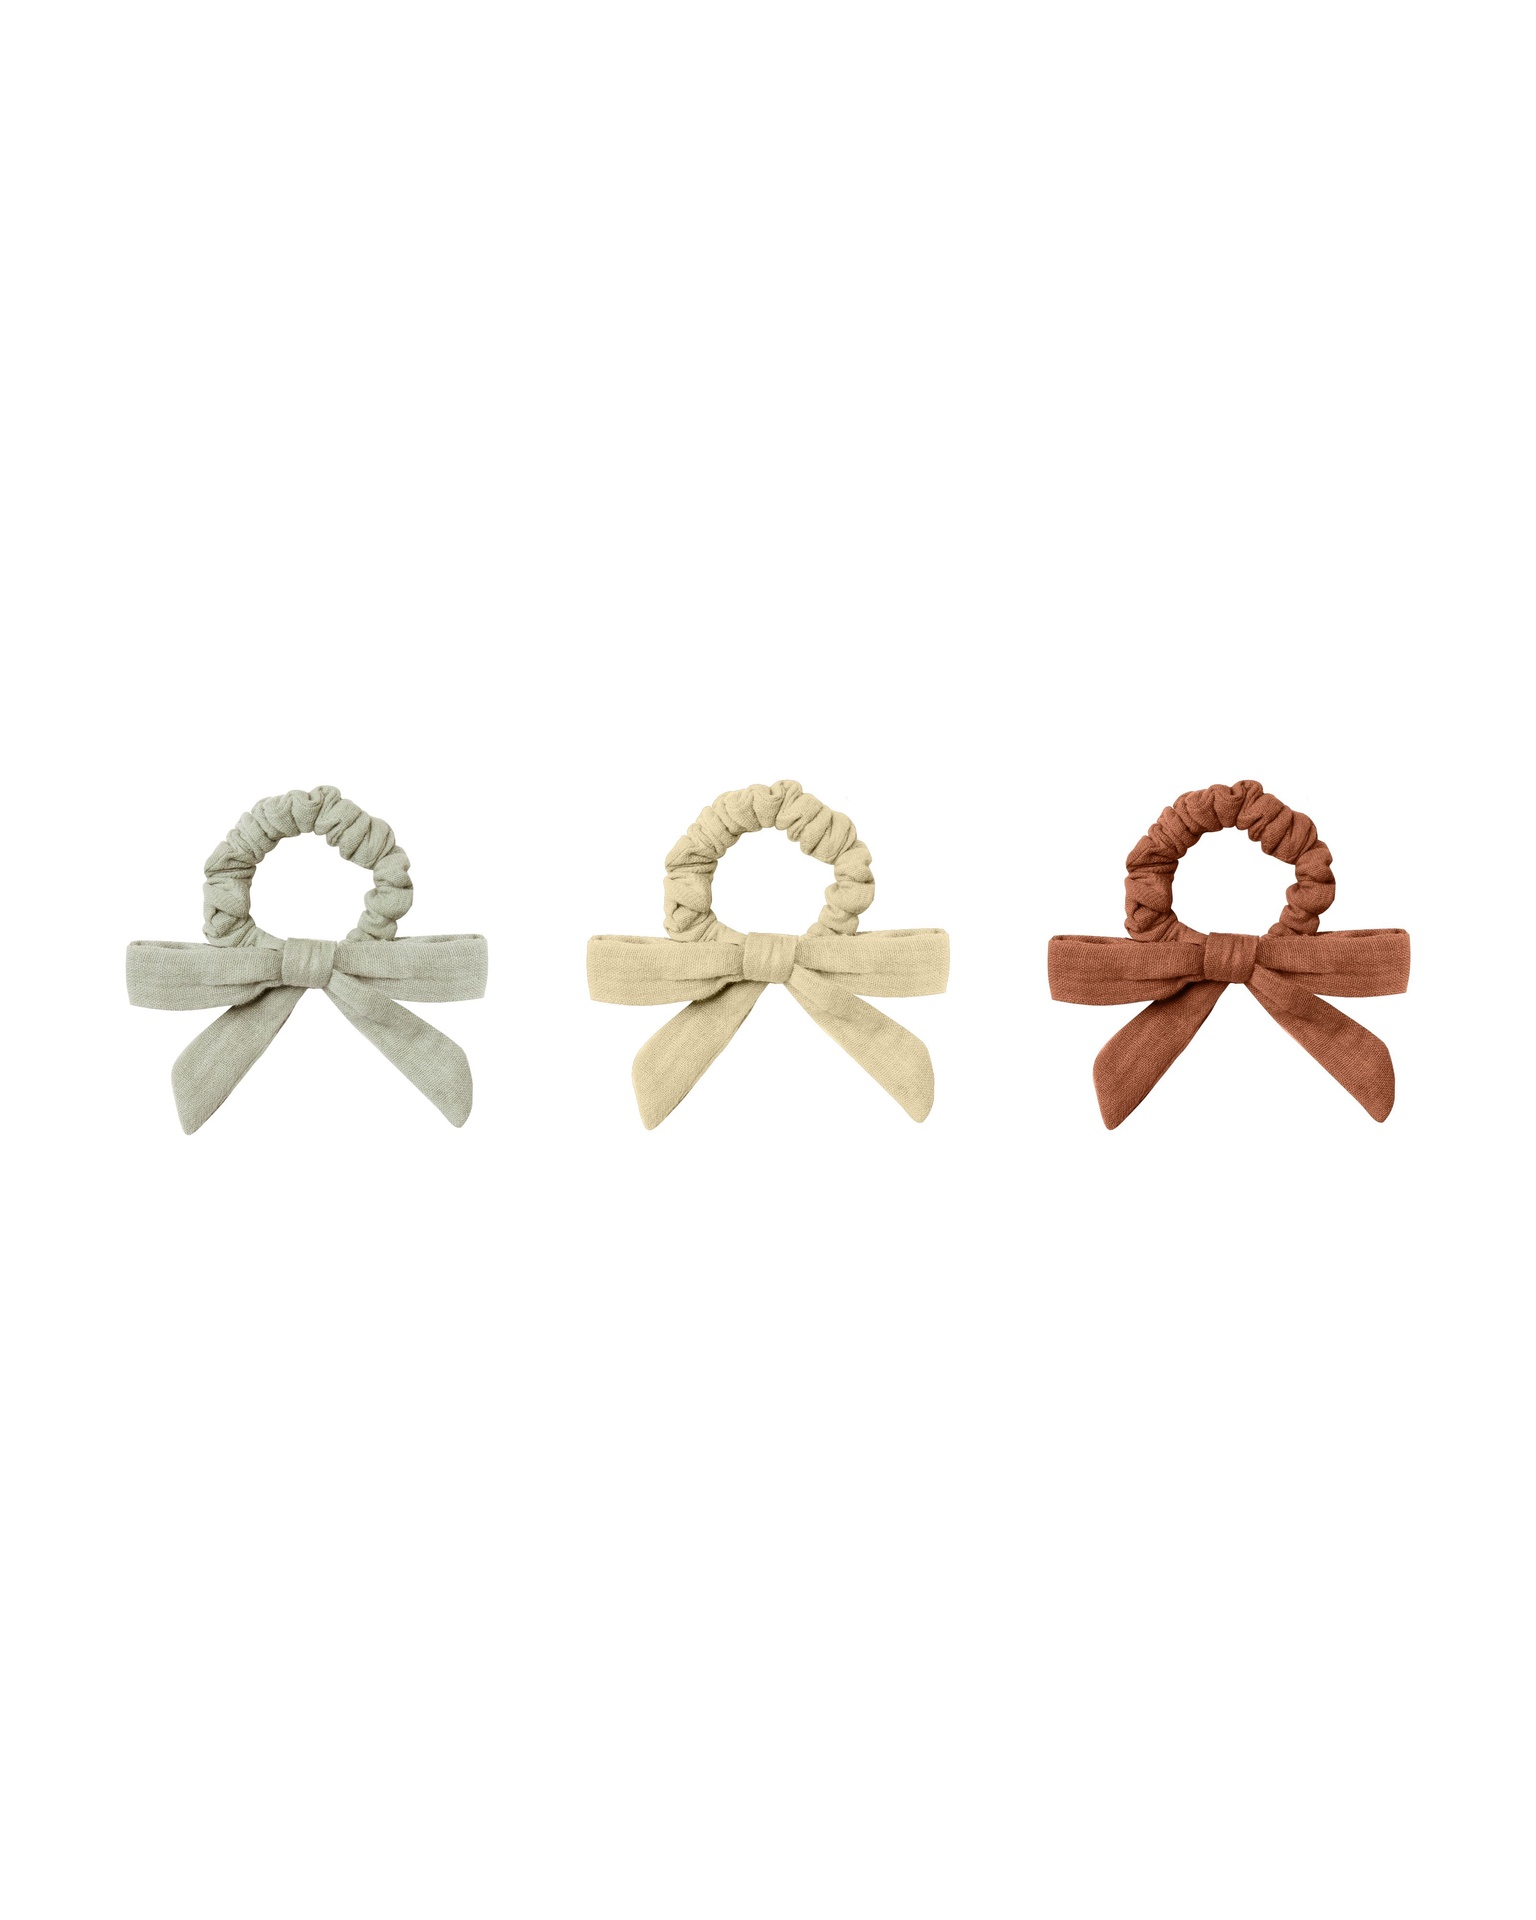 Rylee and Cru Little Bow Scrunchie Set of 3 (sage/butter/amber)